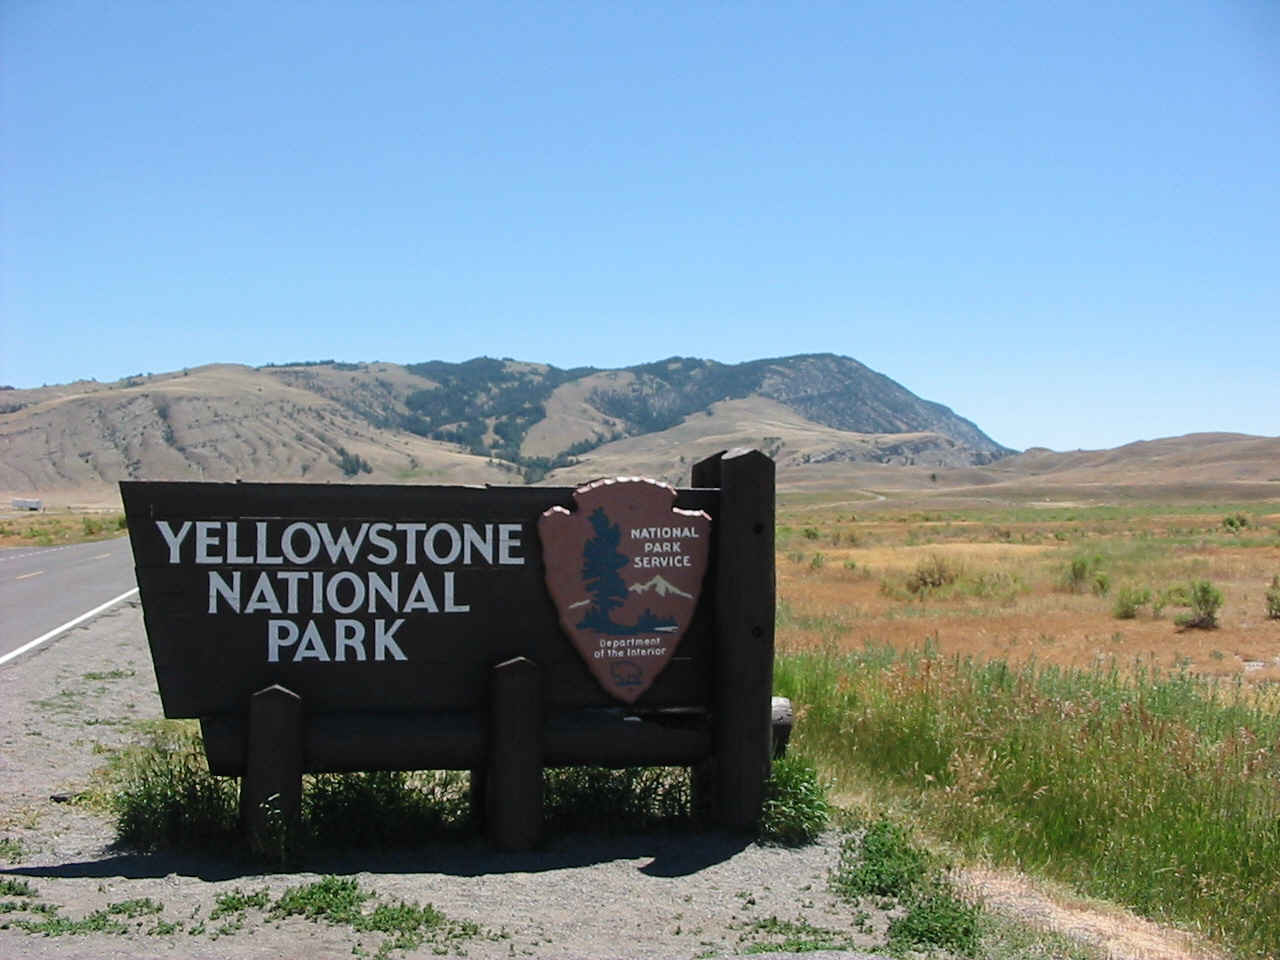 Senior Citizens Locked Inside Yellowstone By Armed Guards Due To Govt. Shutdown - Ben Swann's Truth In Media